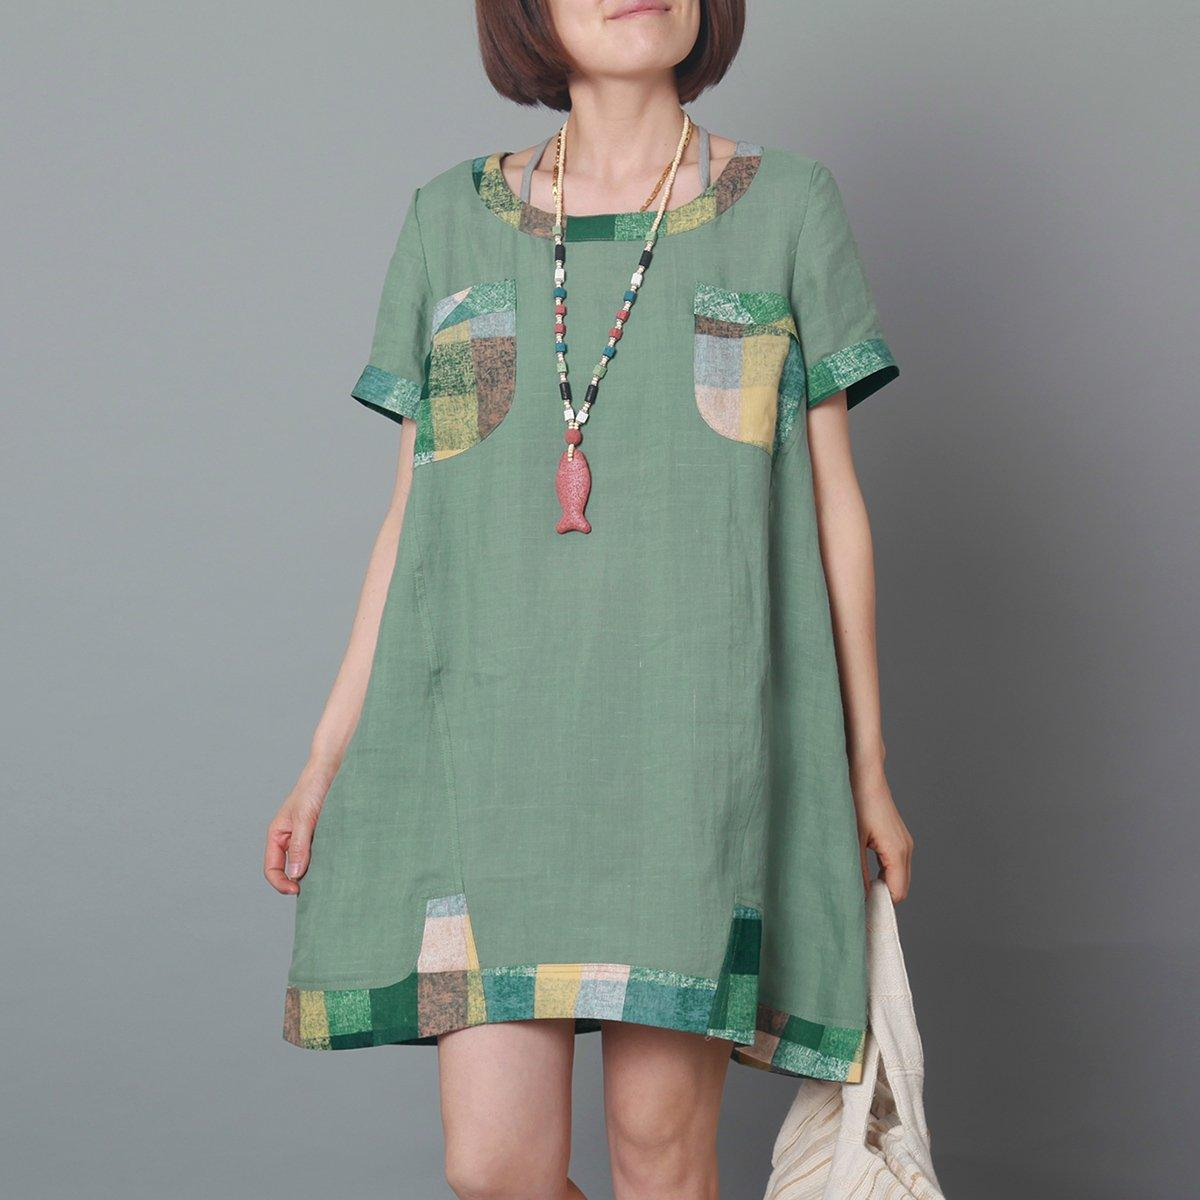 Green overszie linen sundress baggy short sleeve summer dress casual